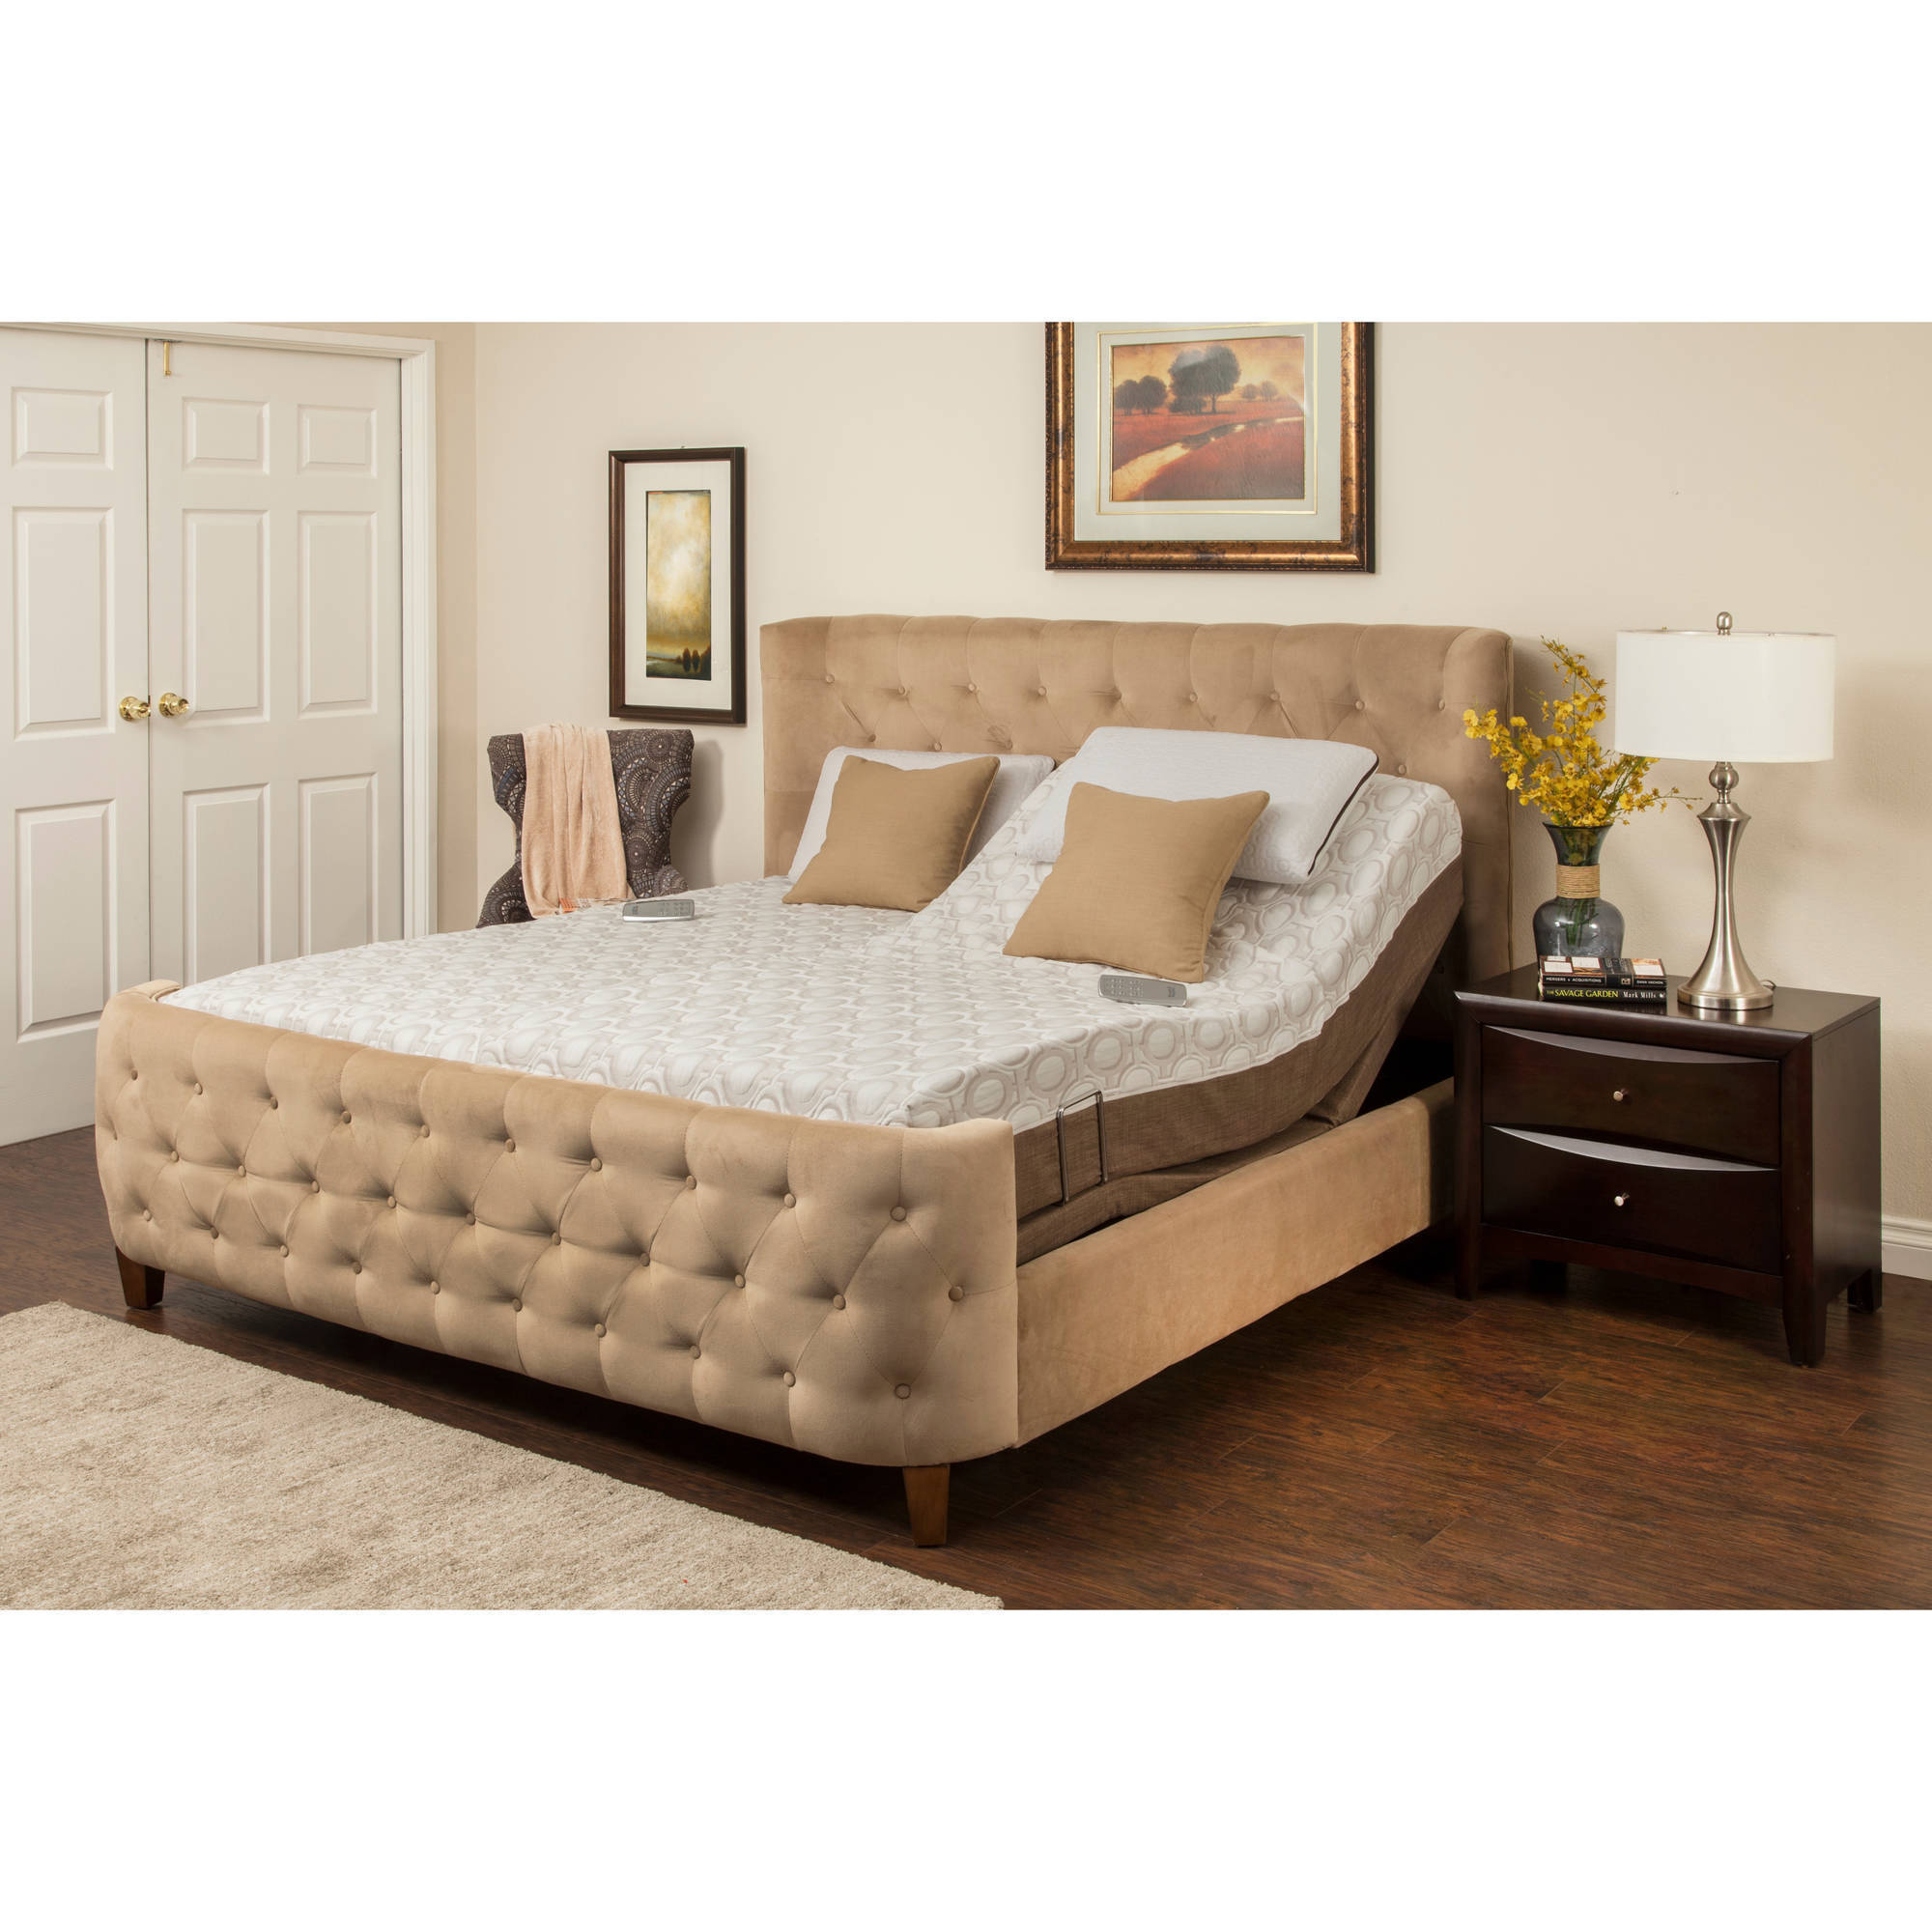 "Blissful Nights Dahlia 11"" Memory Foam Mattress with M-3000 Adjustable Bed Base, Multiple Sizes by South Bay International, Inc."